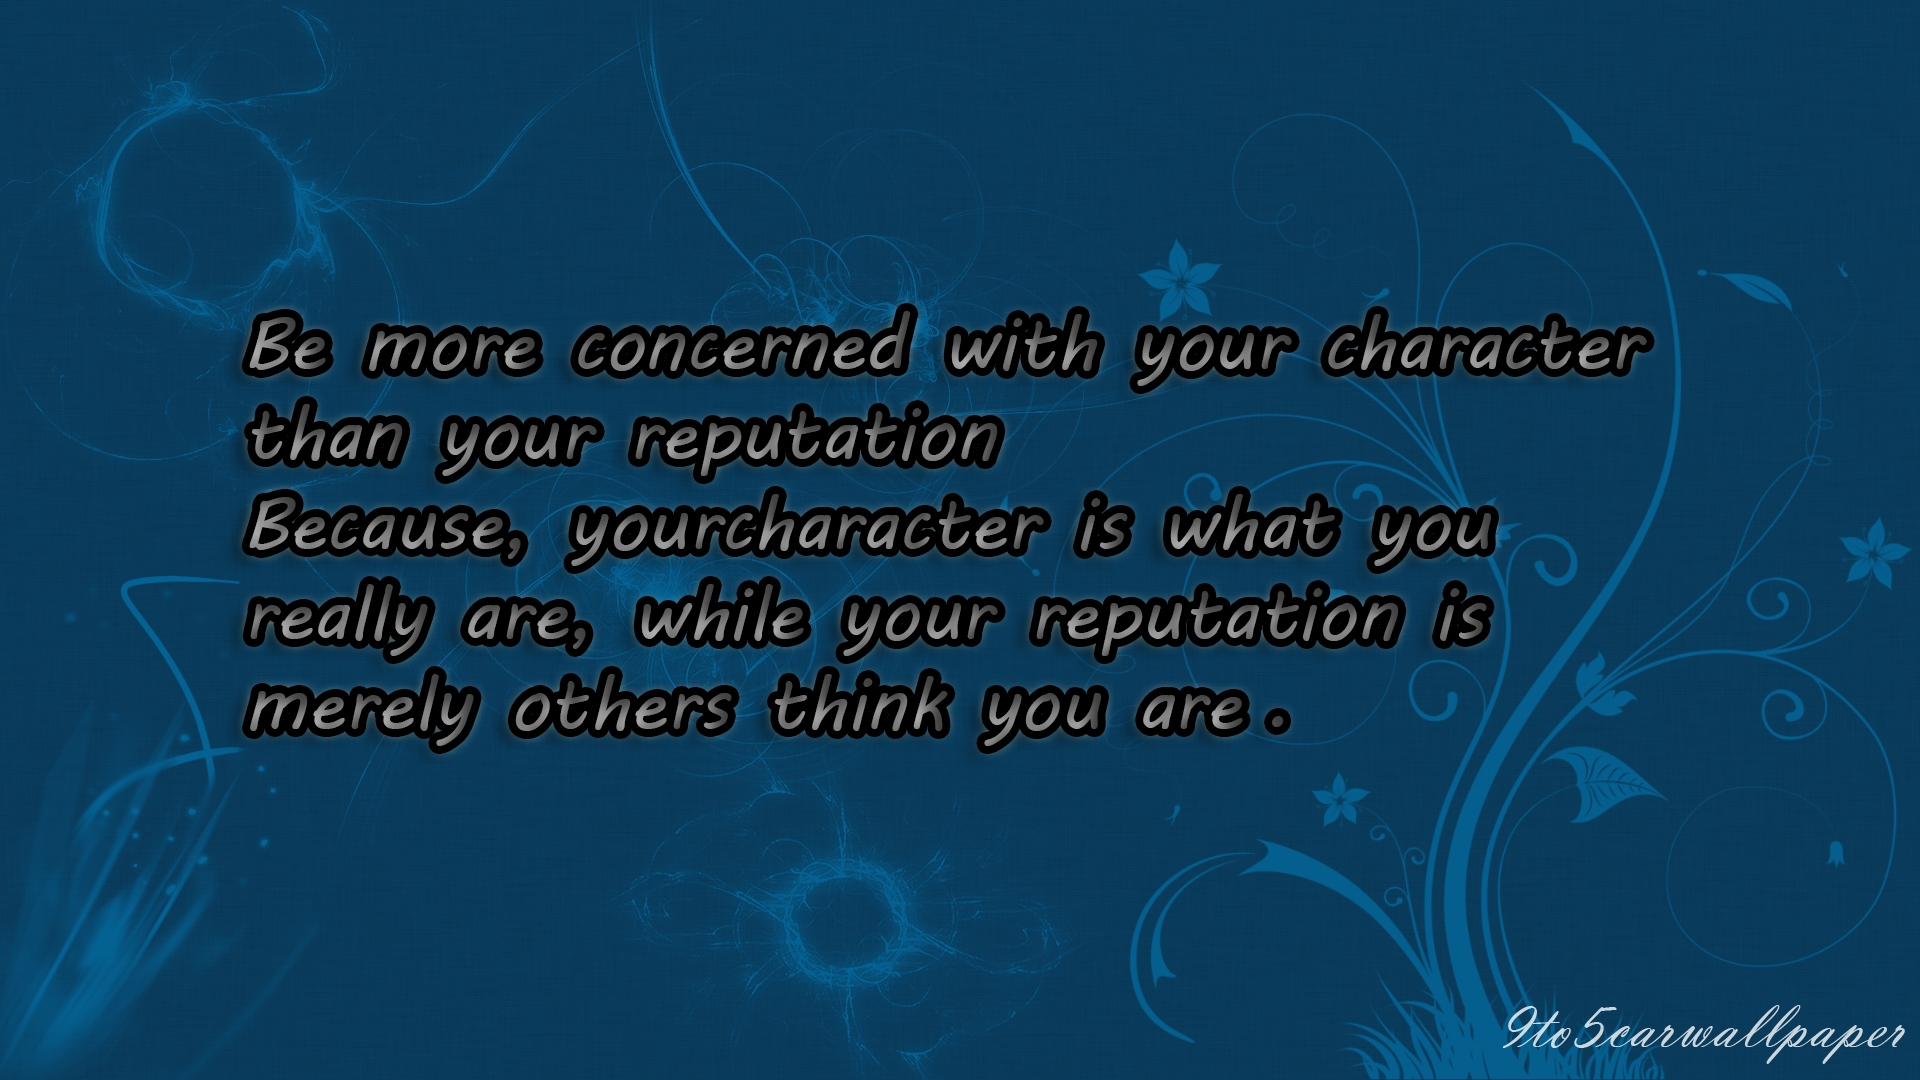 educational quotes images amp hd wallpapers